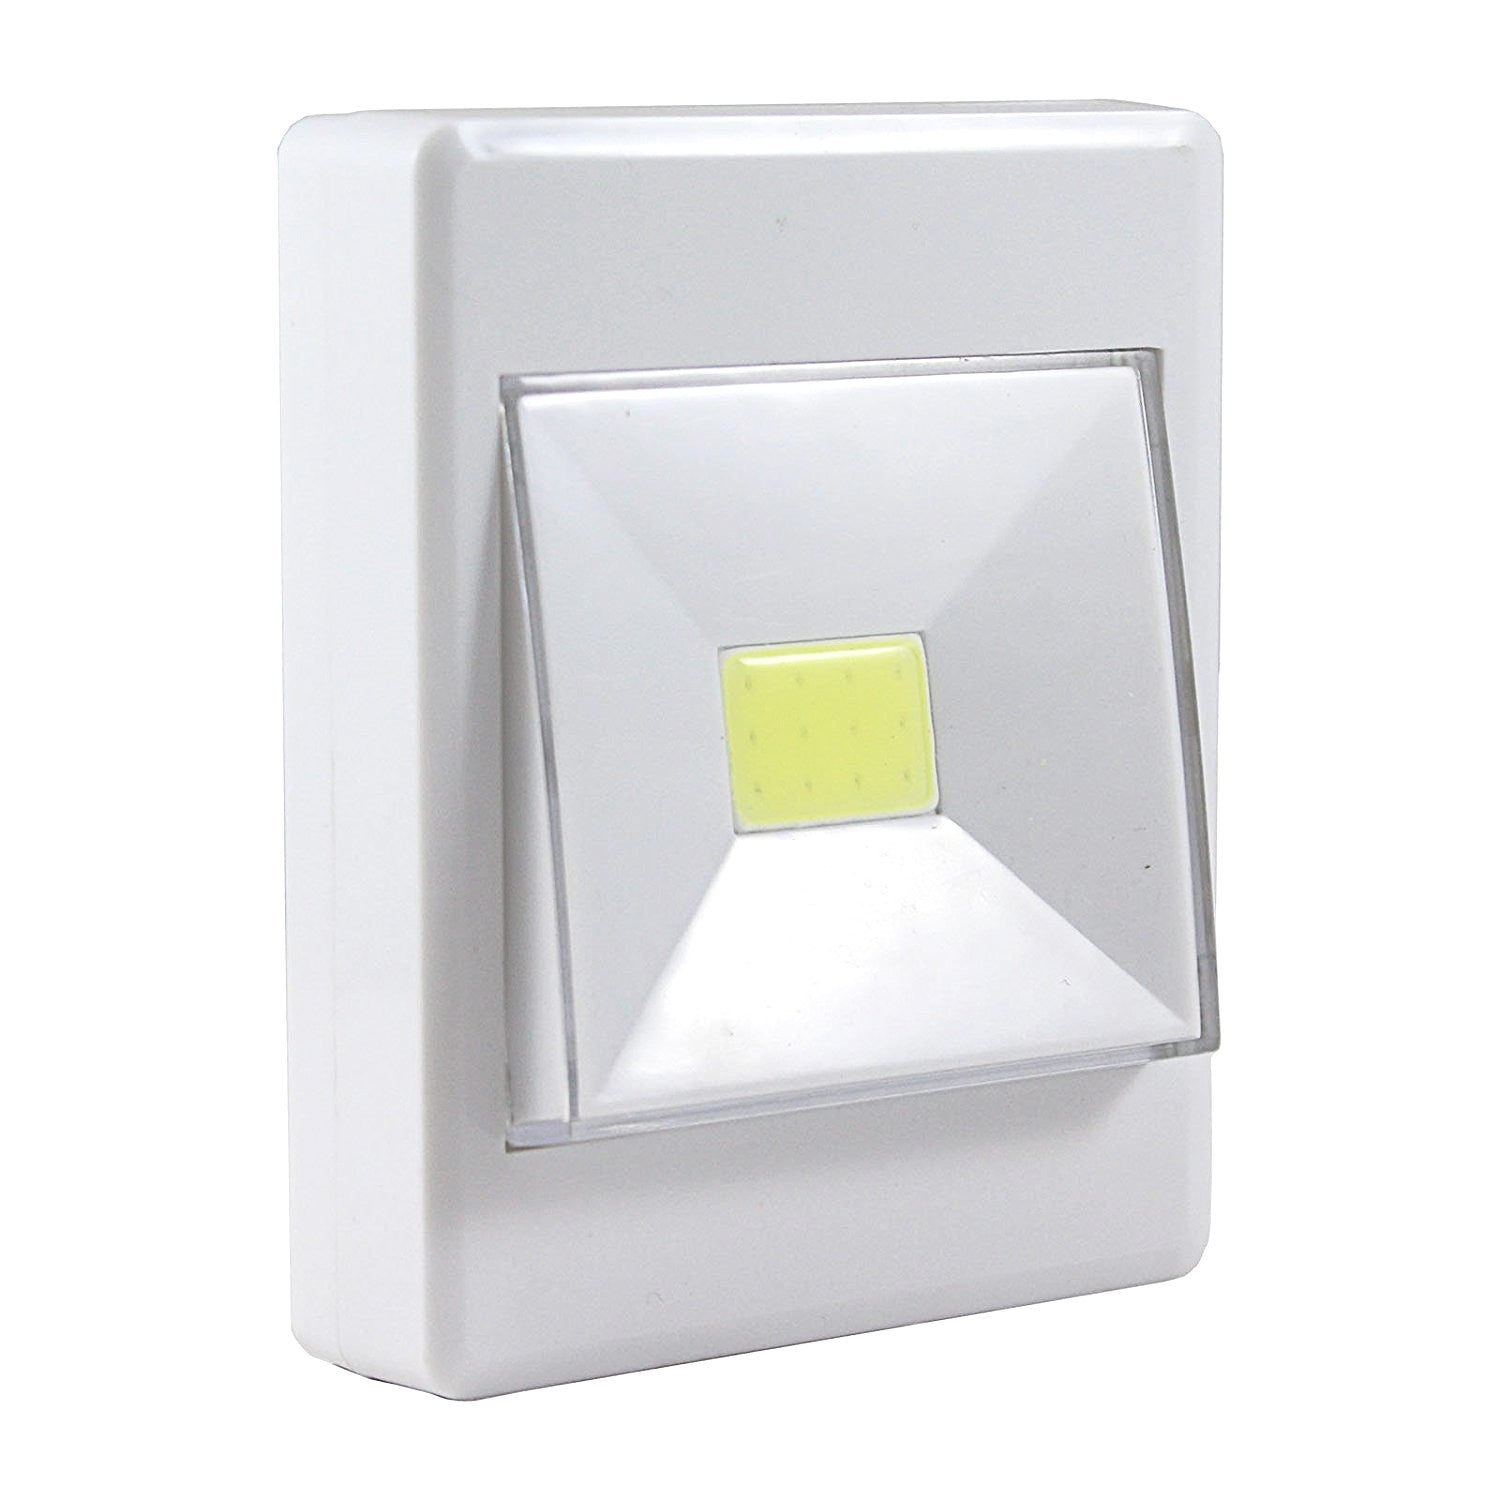 Camping bathroom accessories - Promier Cordless Pivoting Led Light Switch 200 Lumen Attaches W Hook